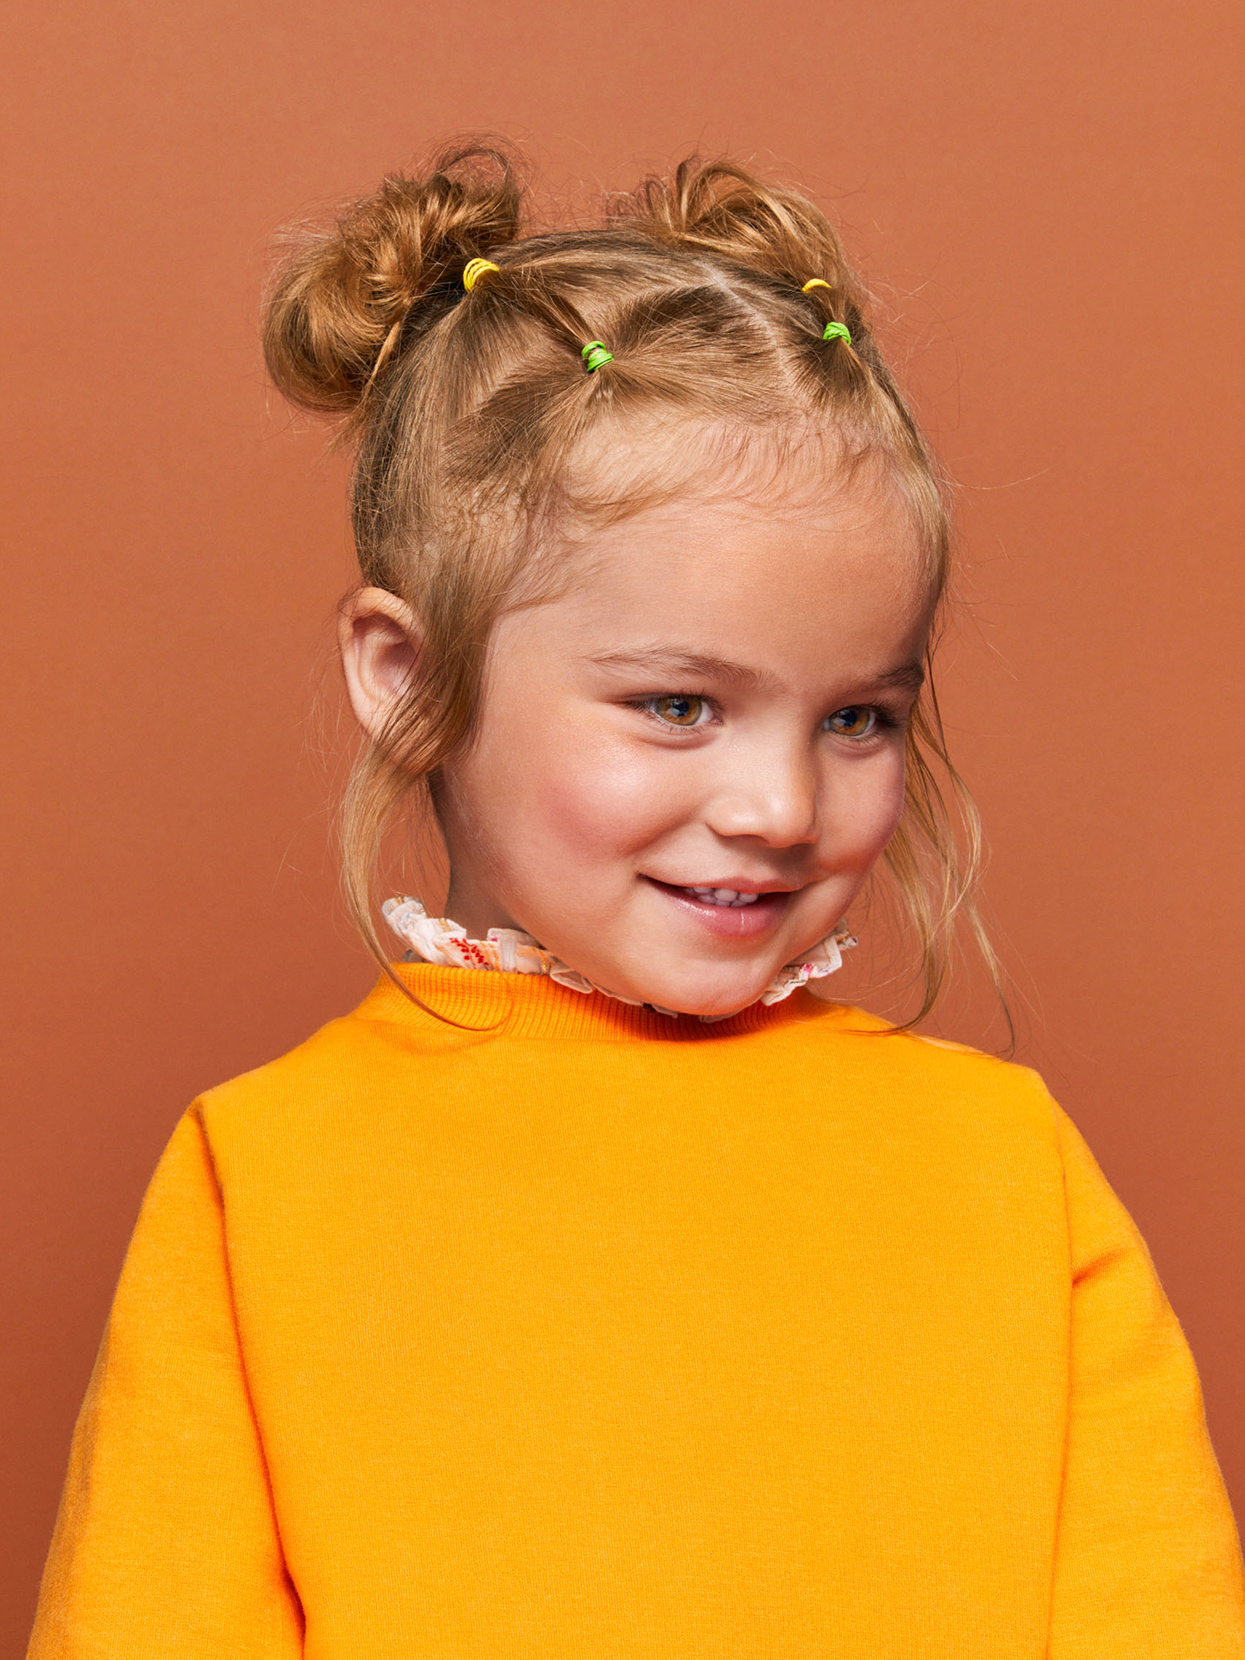 5 Kids' Hairstyling Secrets